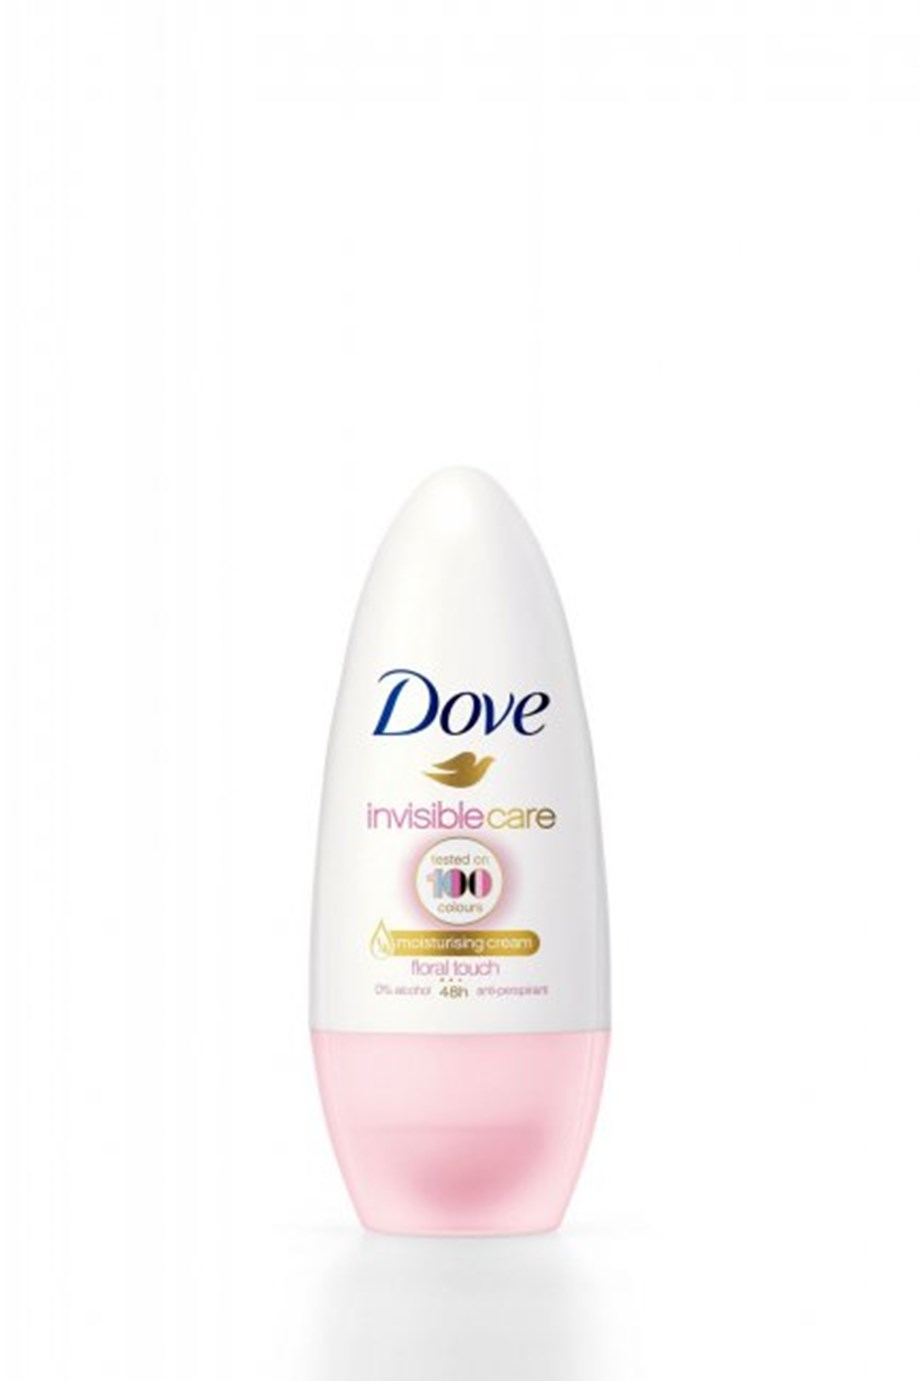 Dove Invisible Floral Touch roll on